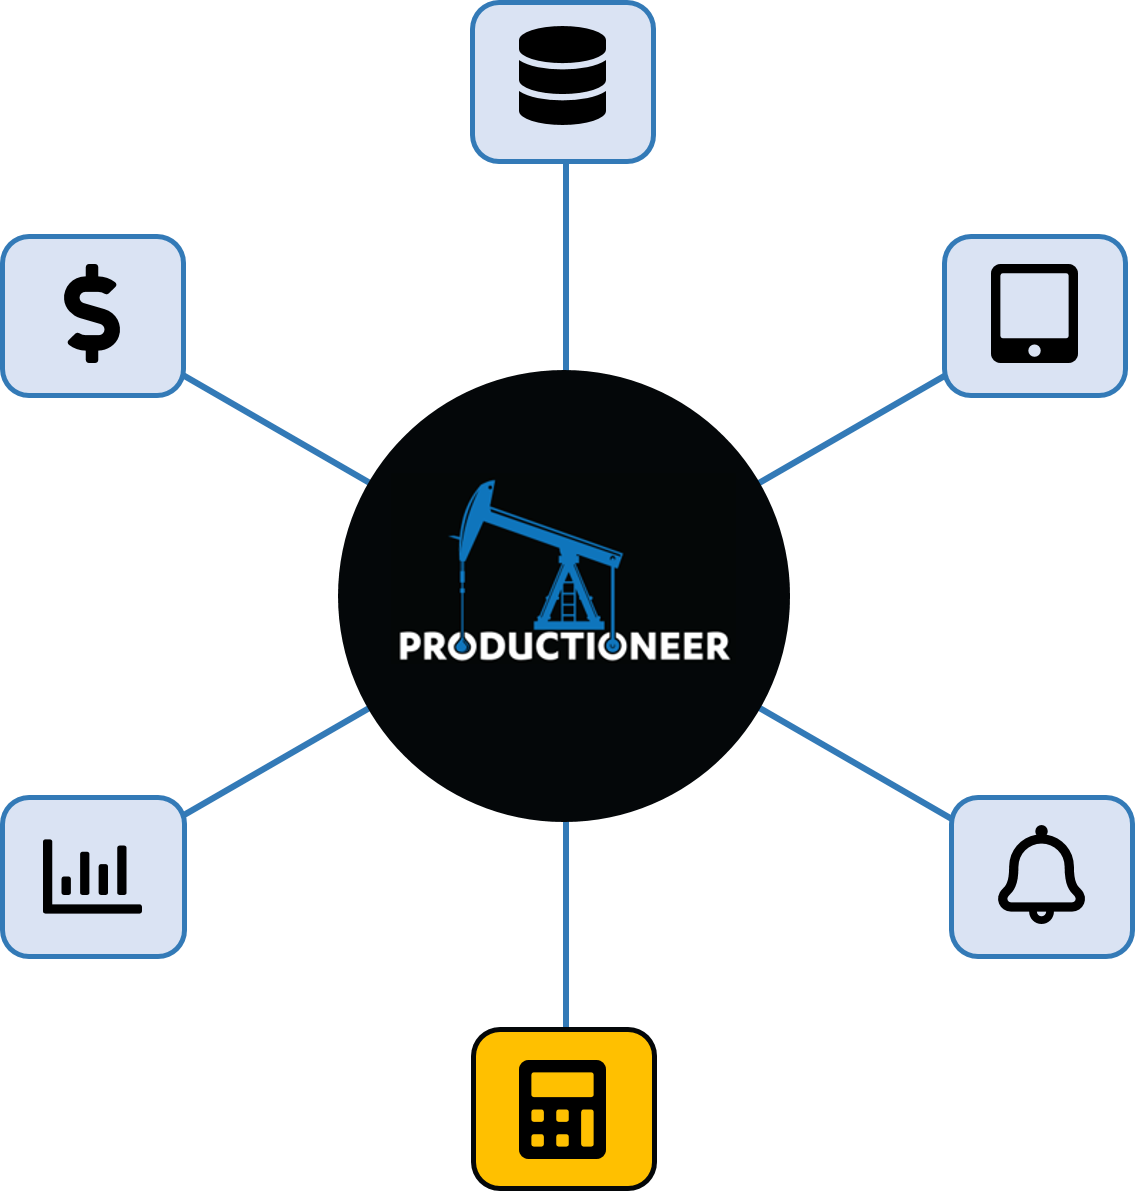 Productioneer allocations feature wheel